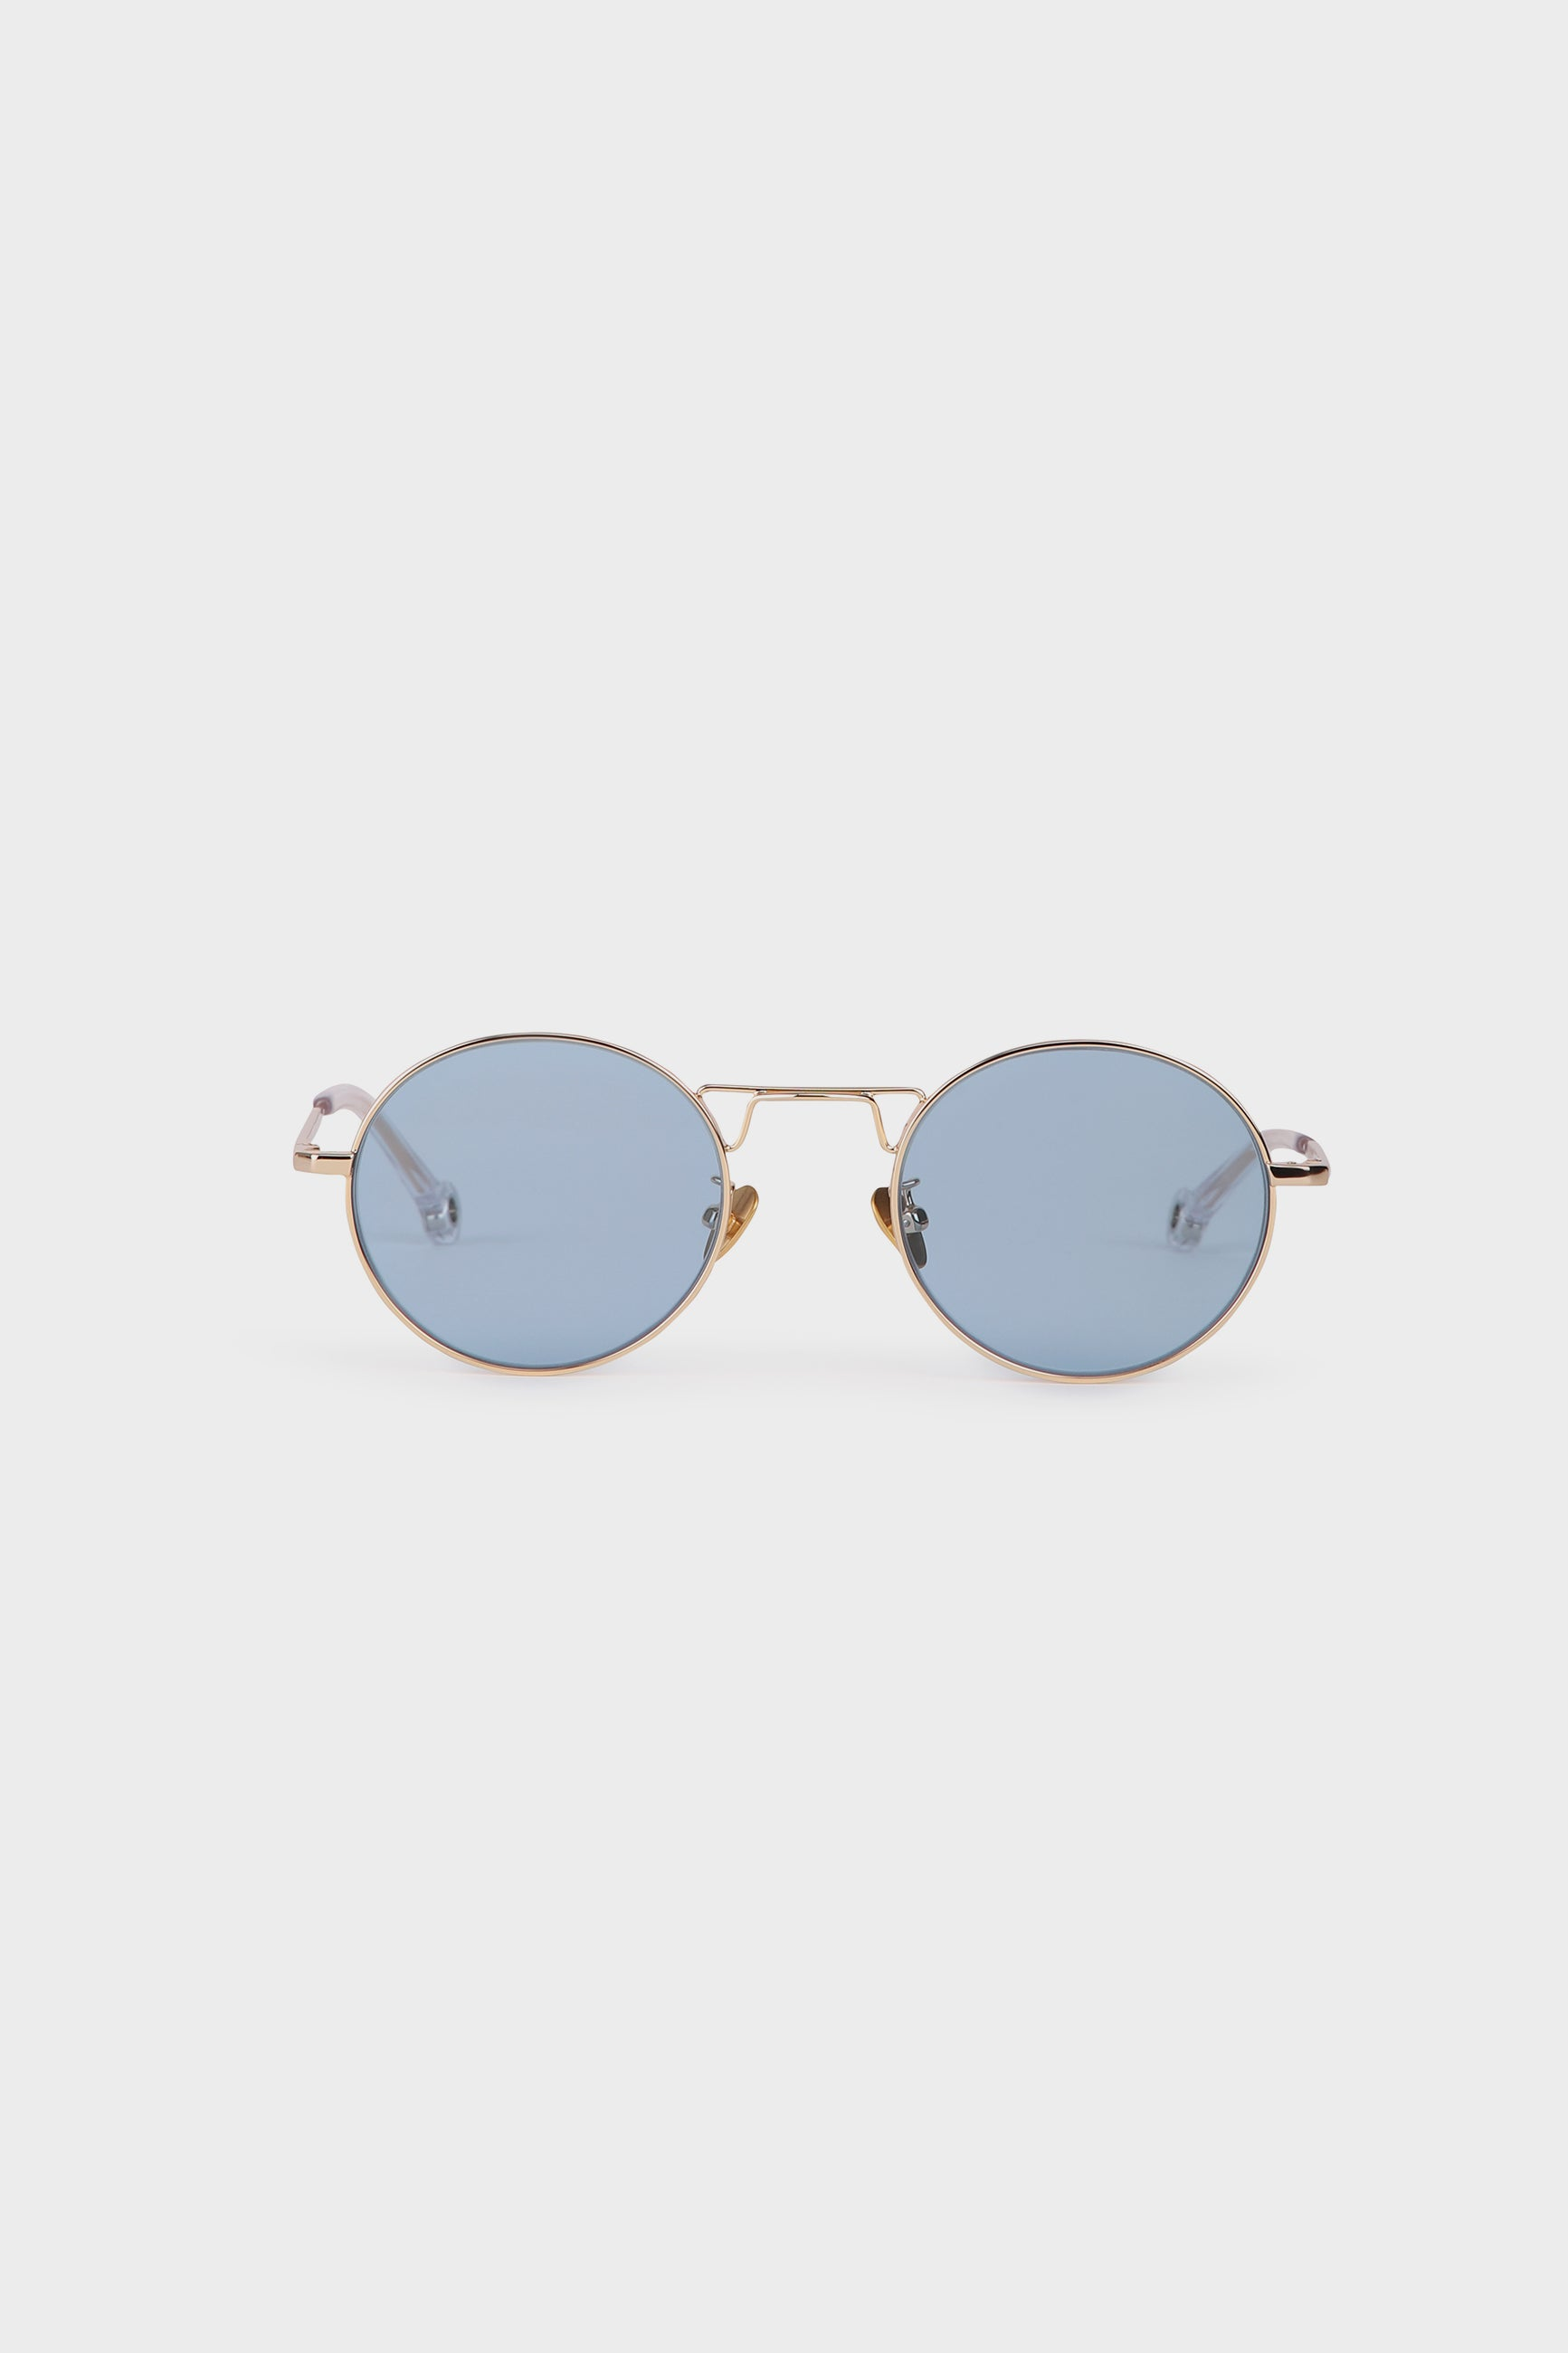 Études Resist Gold Blue Sunglasses 1